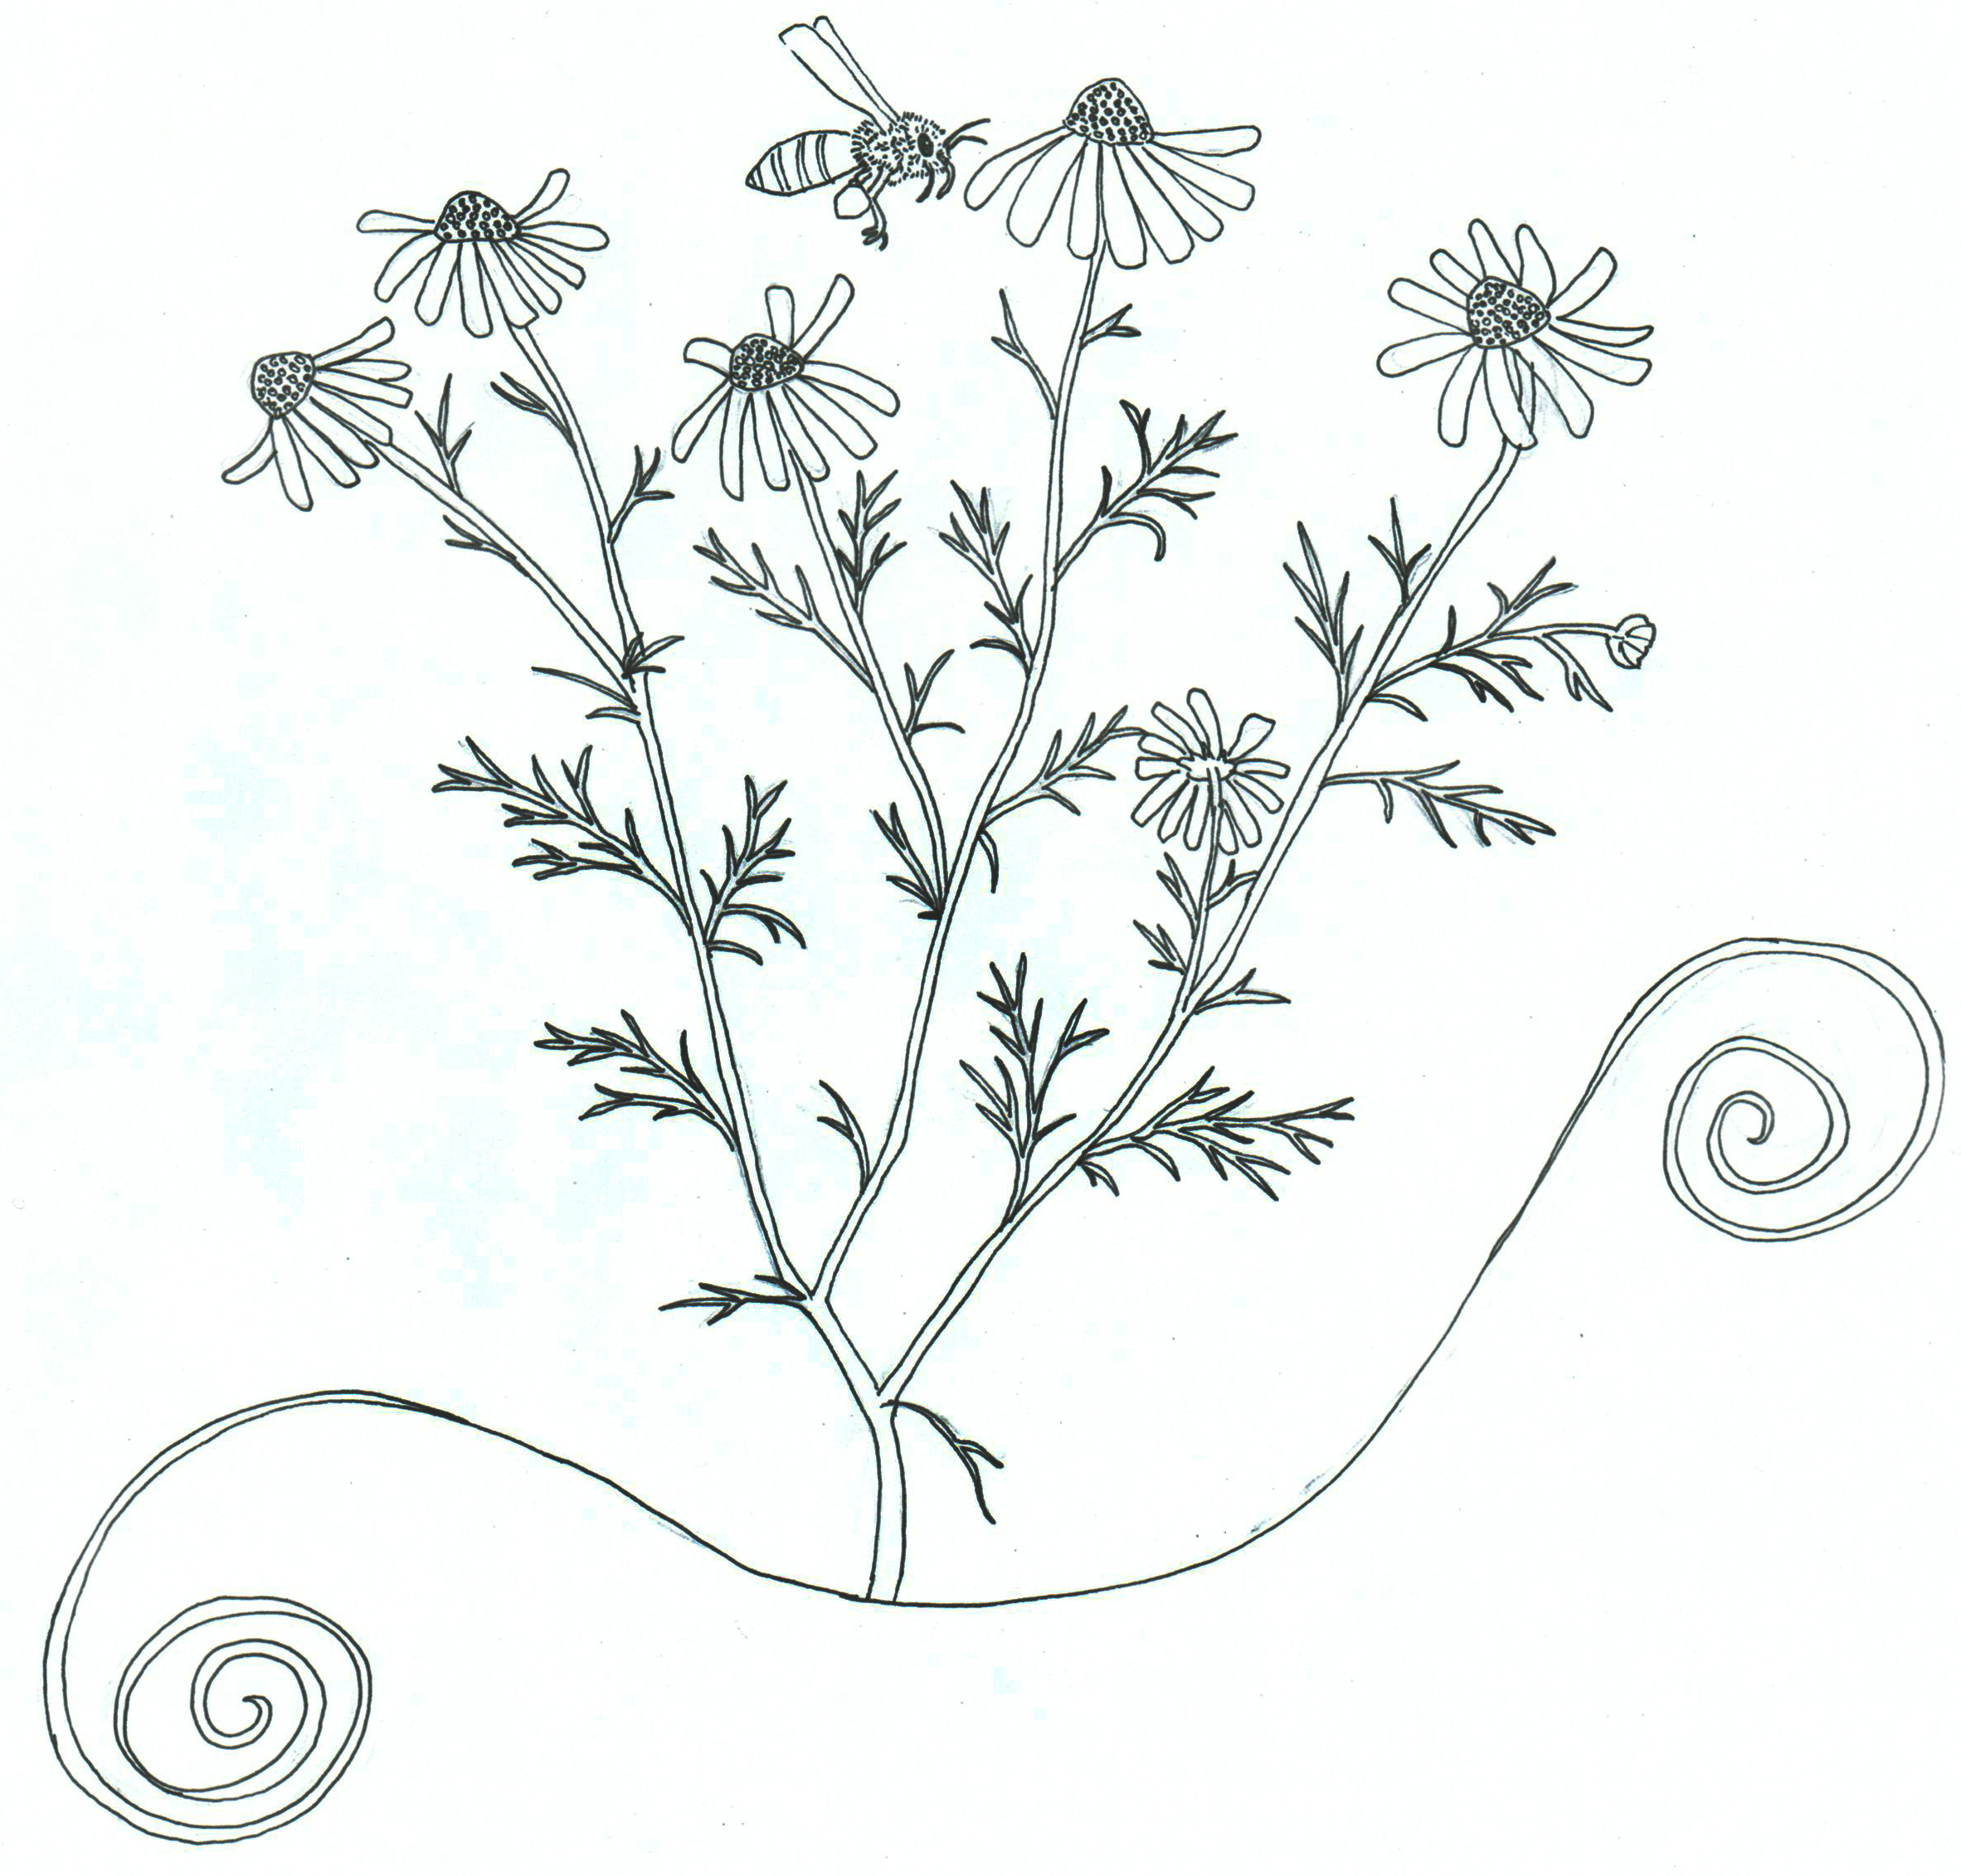 herbs coloring pages - photo#28